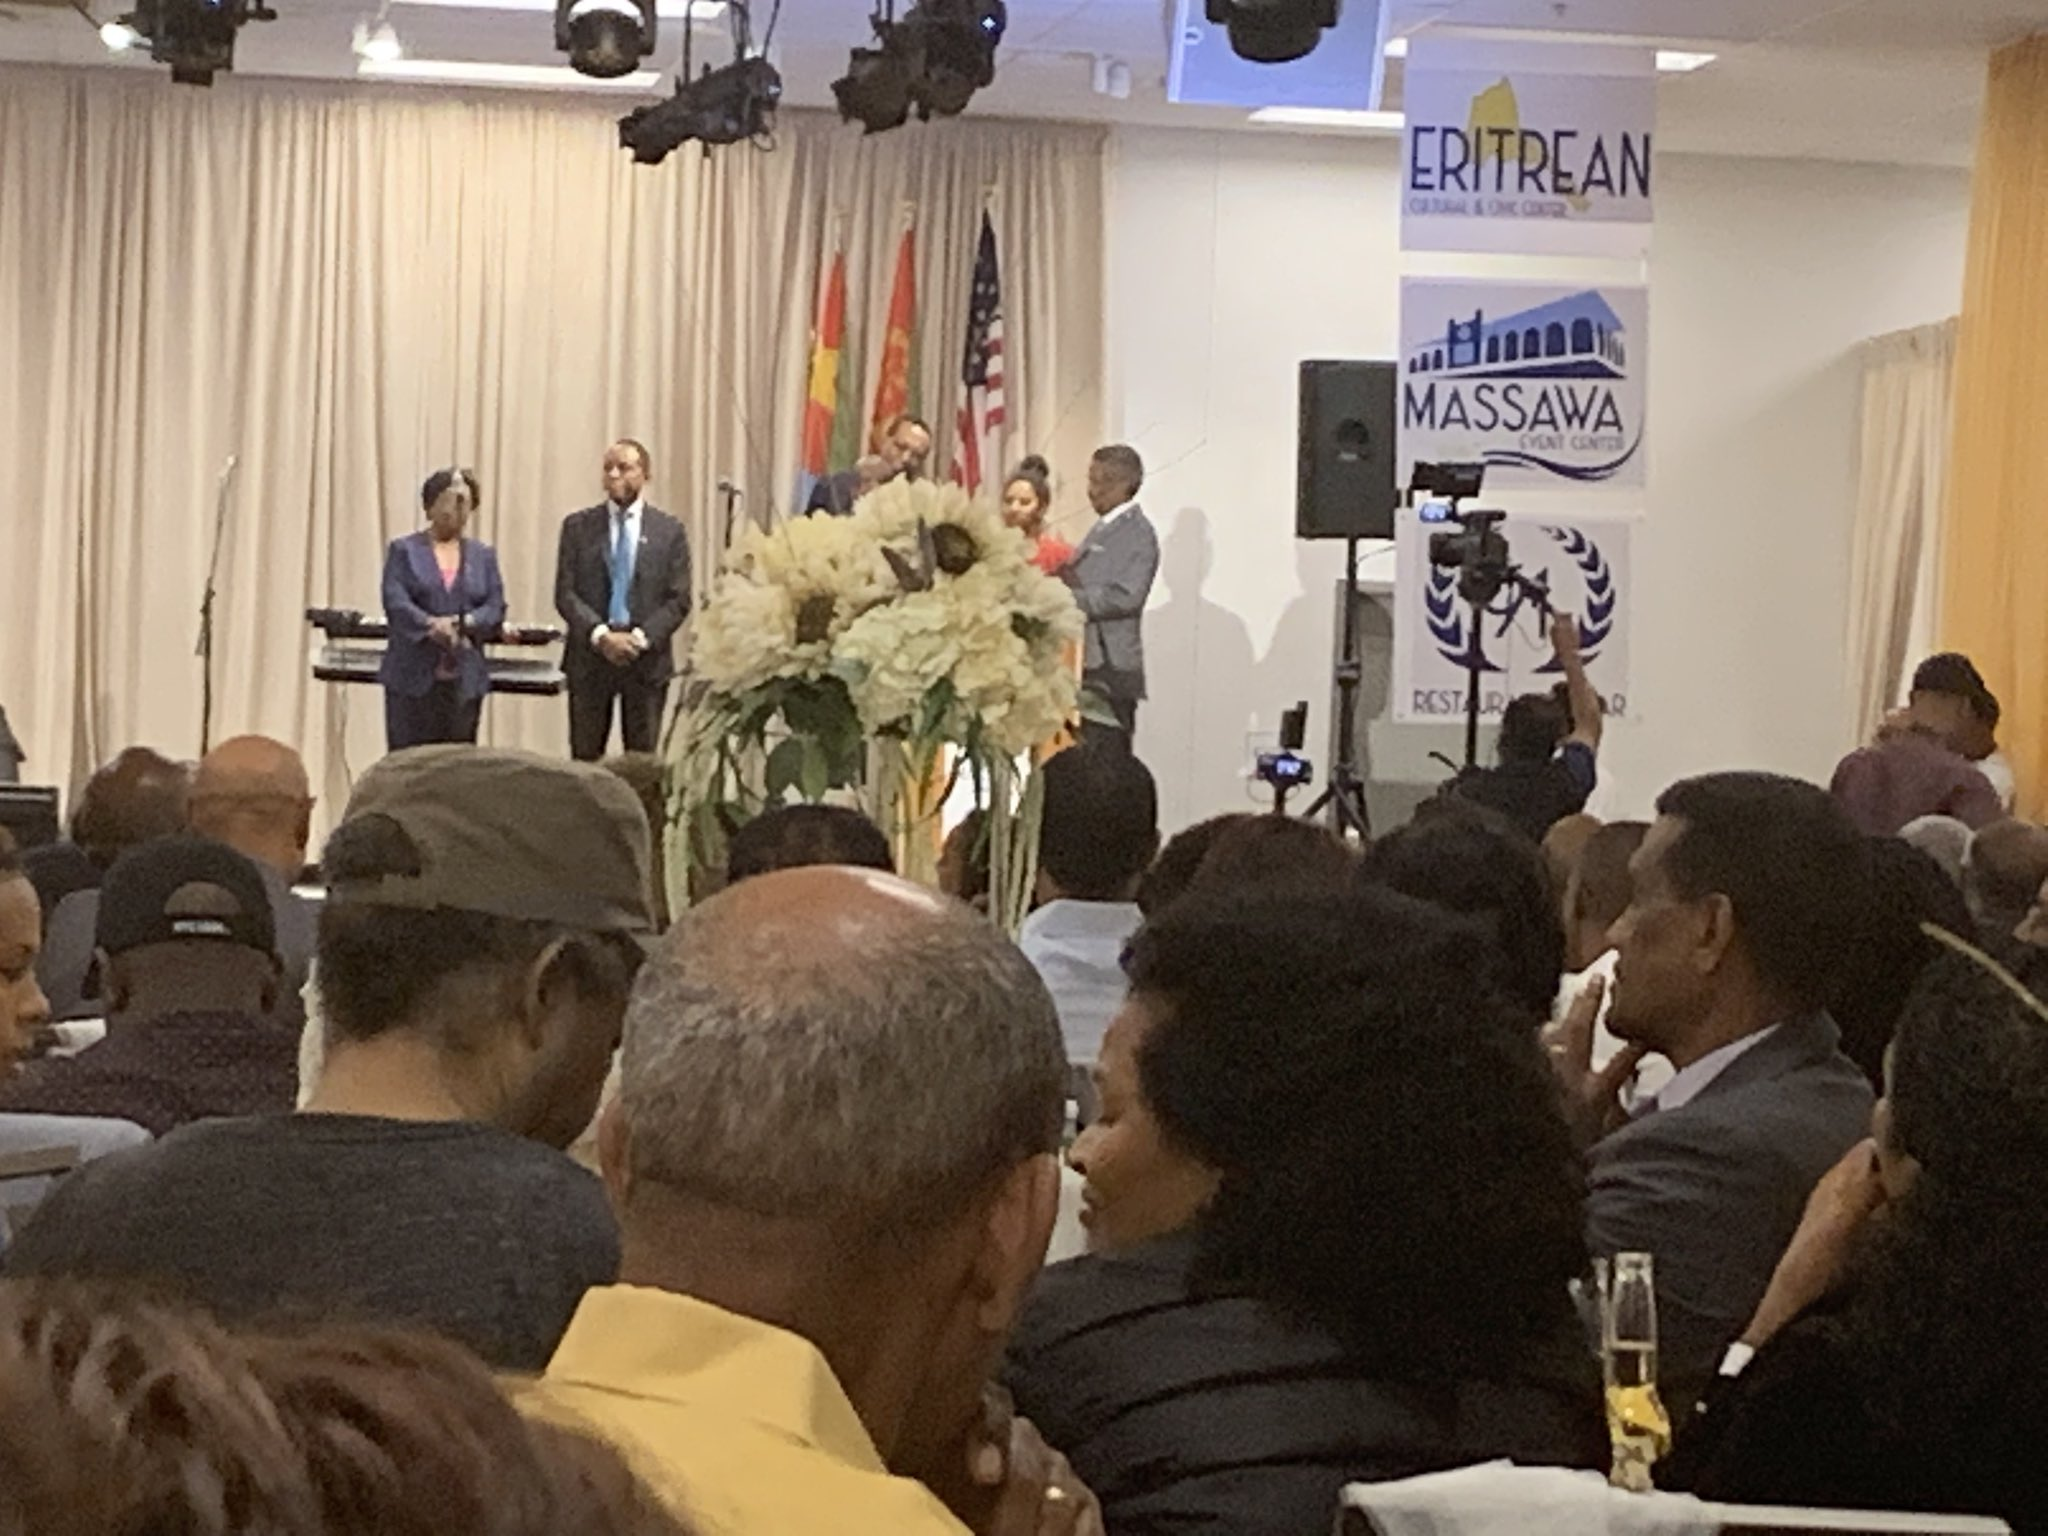 New Eritrean Community in Washington DC Officially Opens